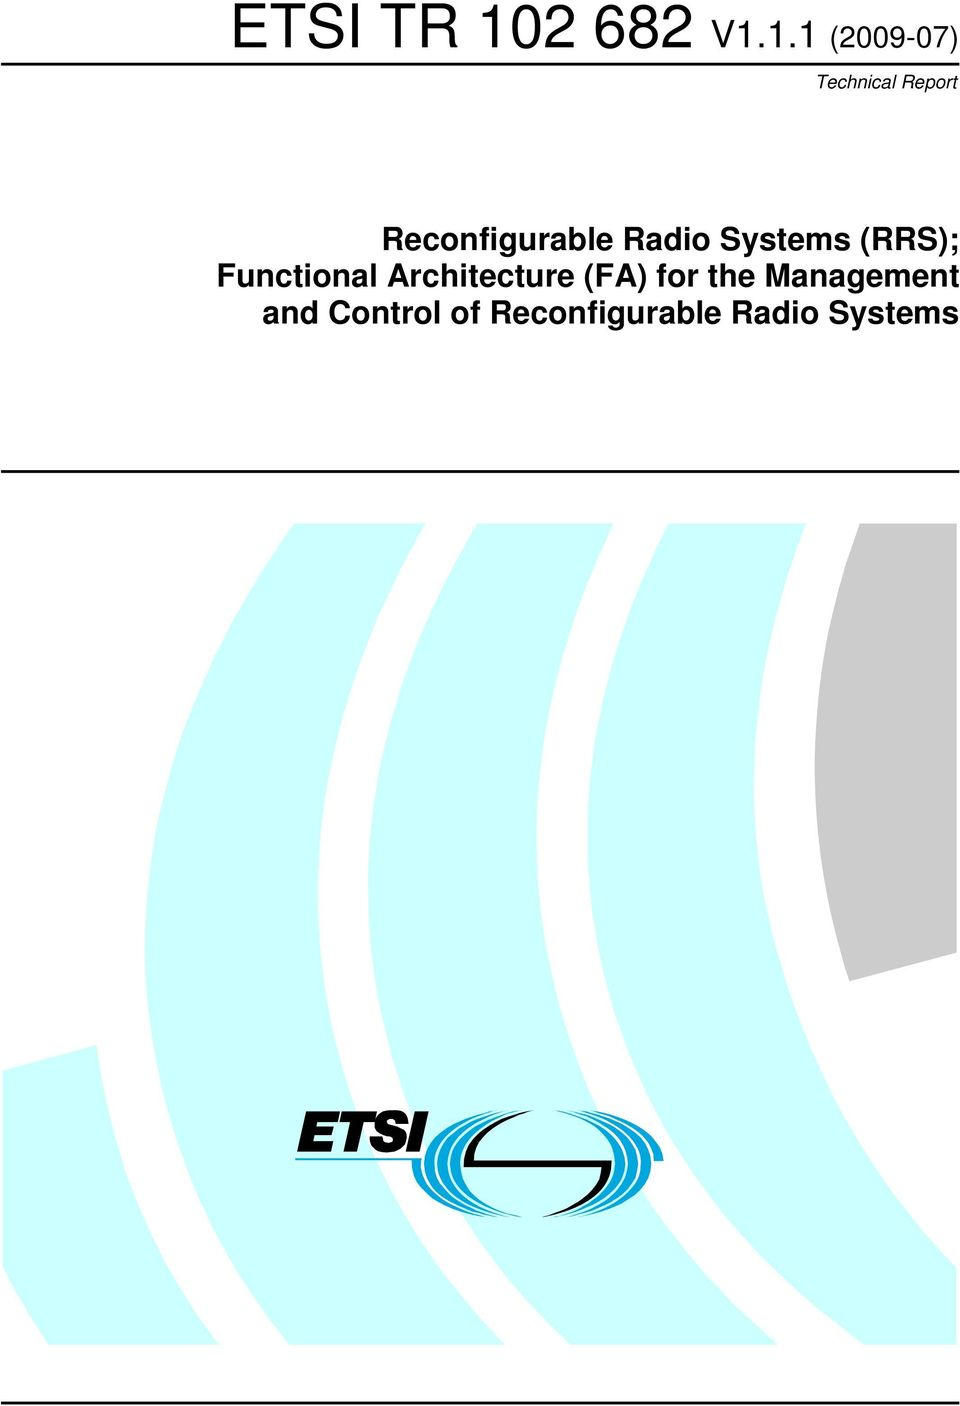 Functional Architecture (FA) for the